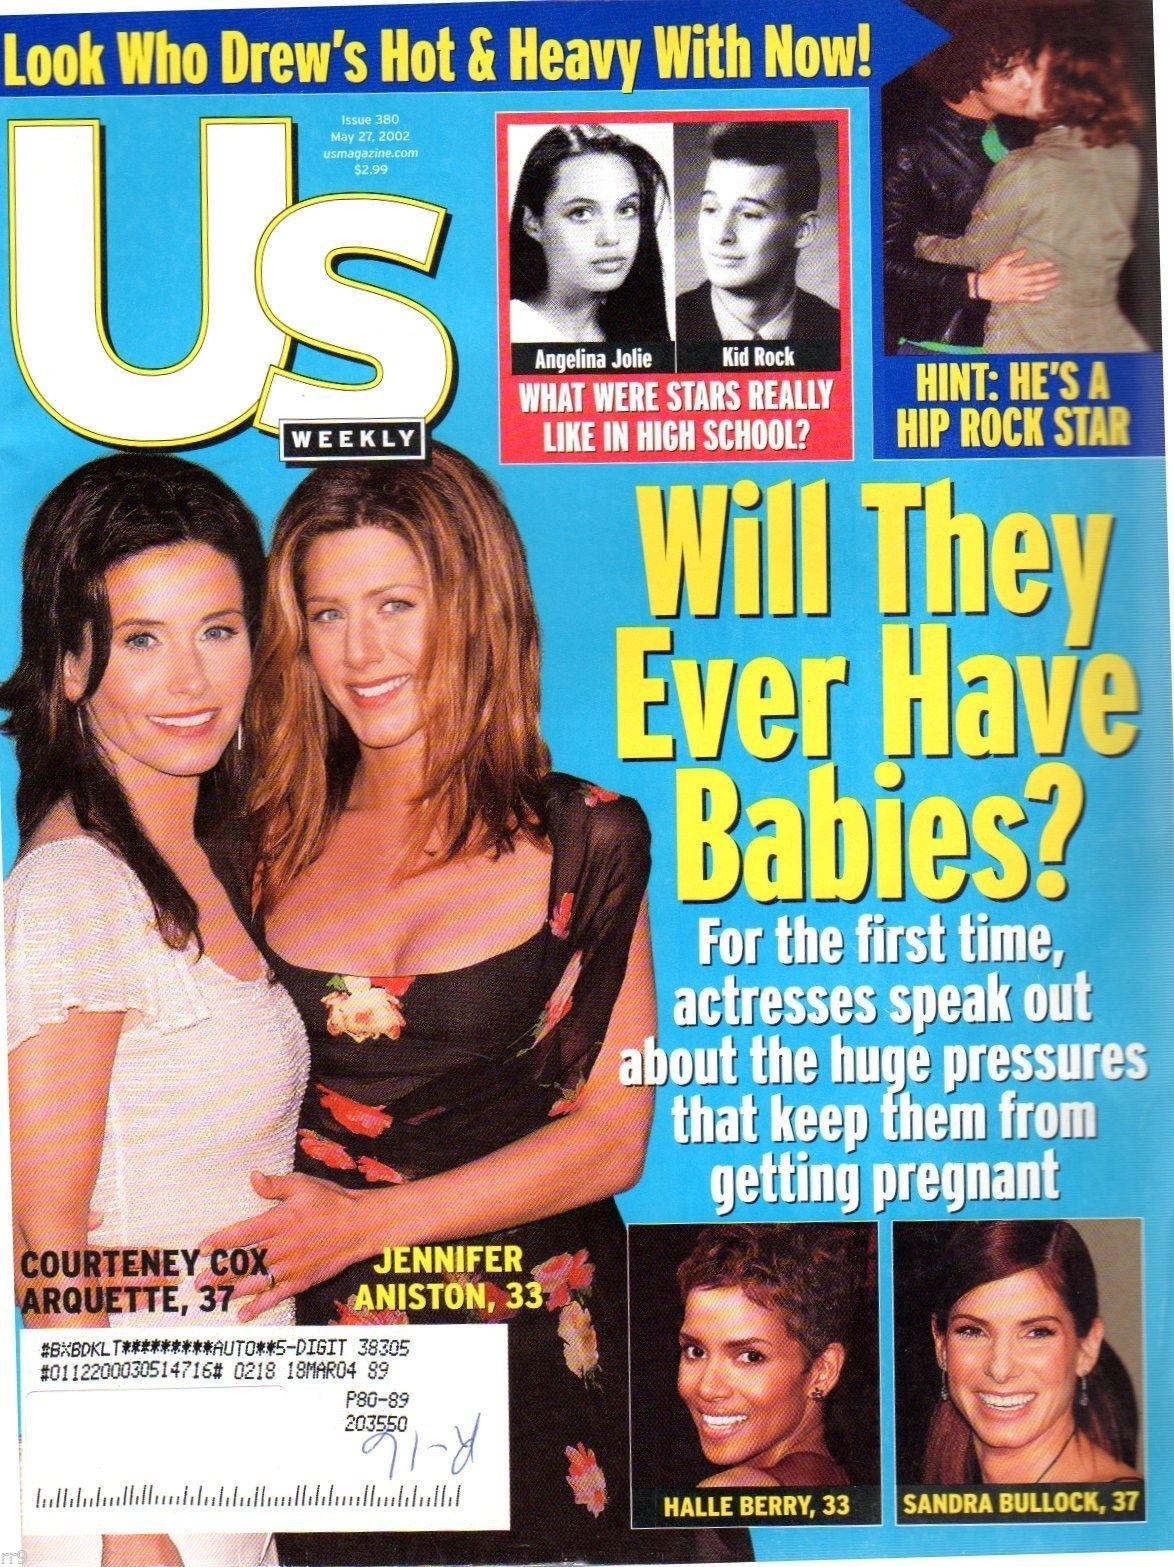 Primary image for U.S.News Magazine May 27, 2002 Cox, Aniston, Berry, Bullock, Barrymore